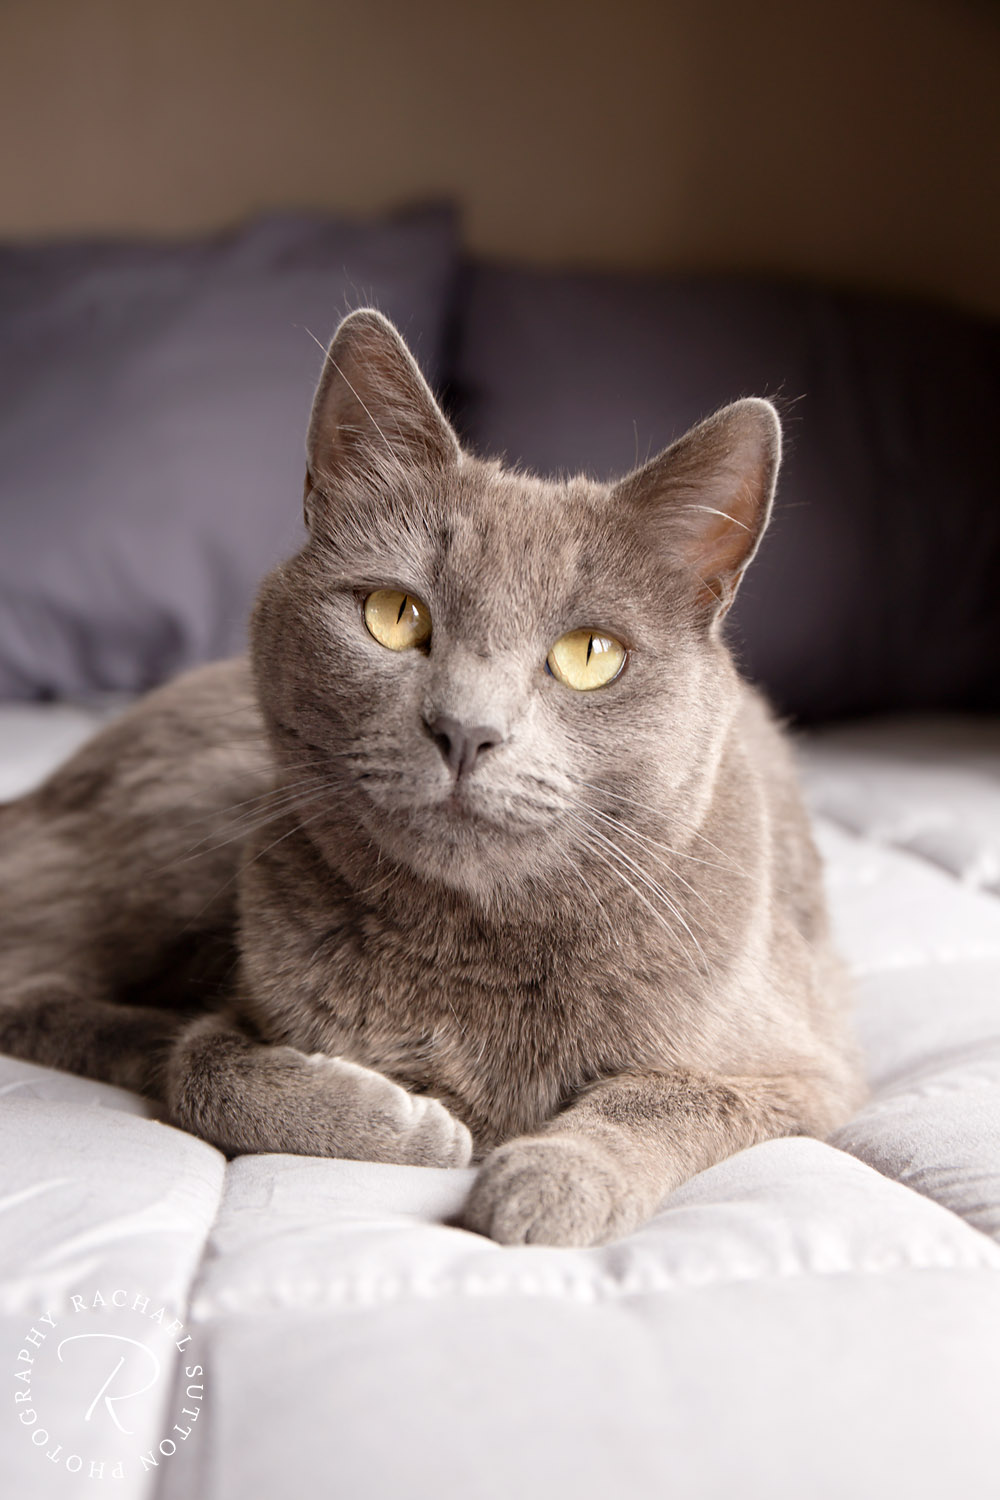 Cat Photo, Cat, sitting on bed with bright yellow eyes. Rotorua New Zealand